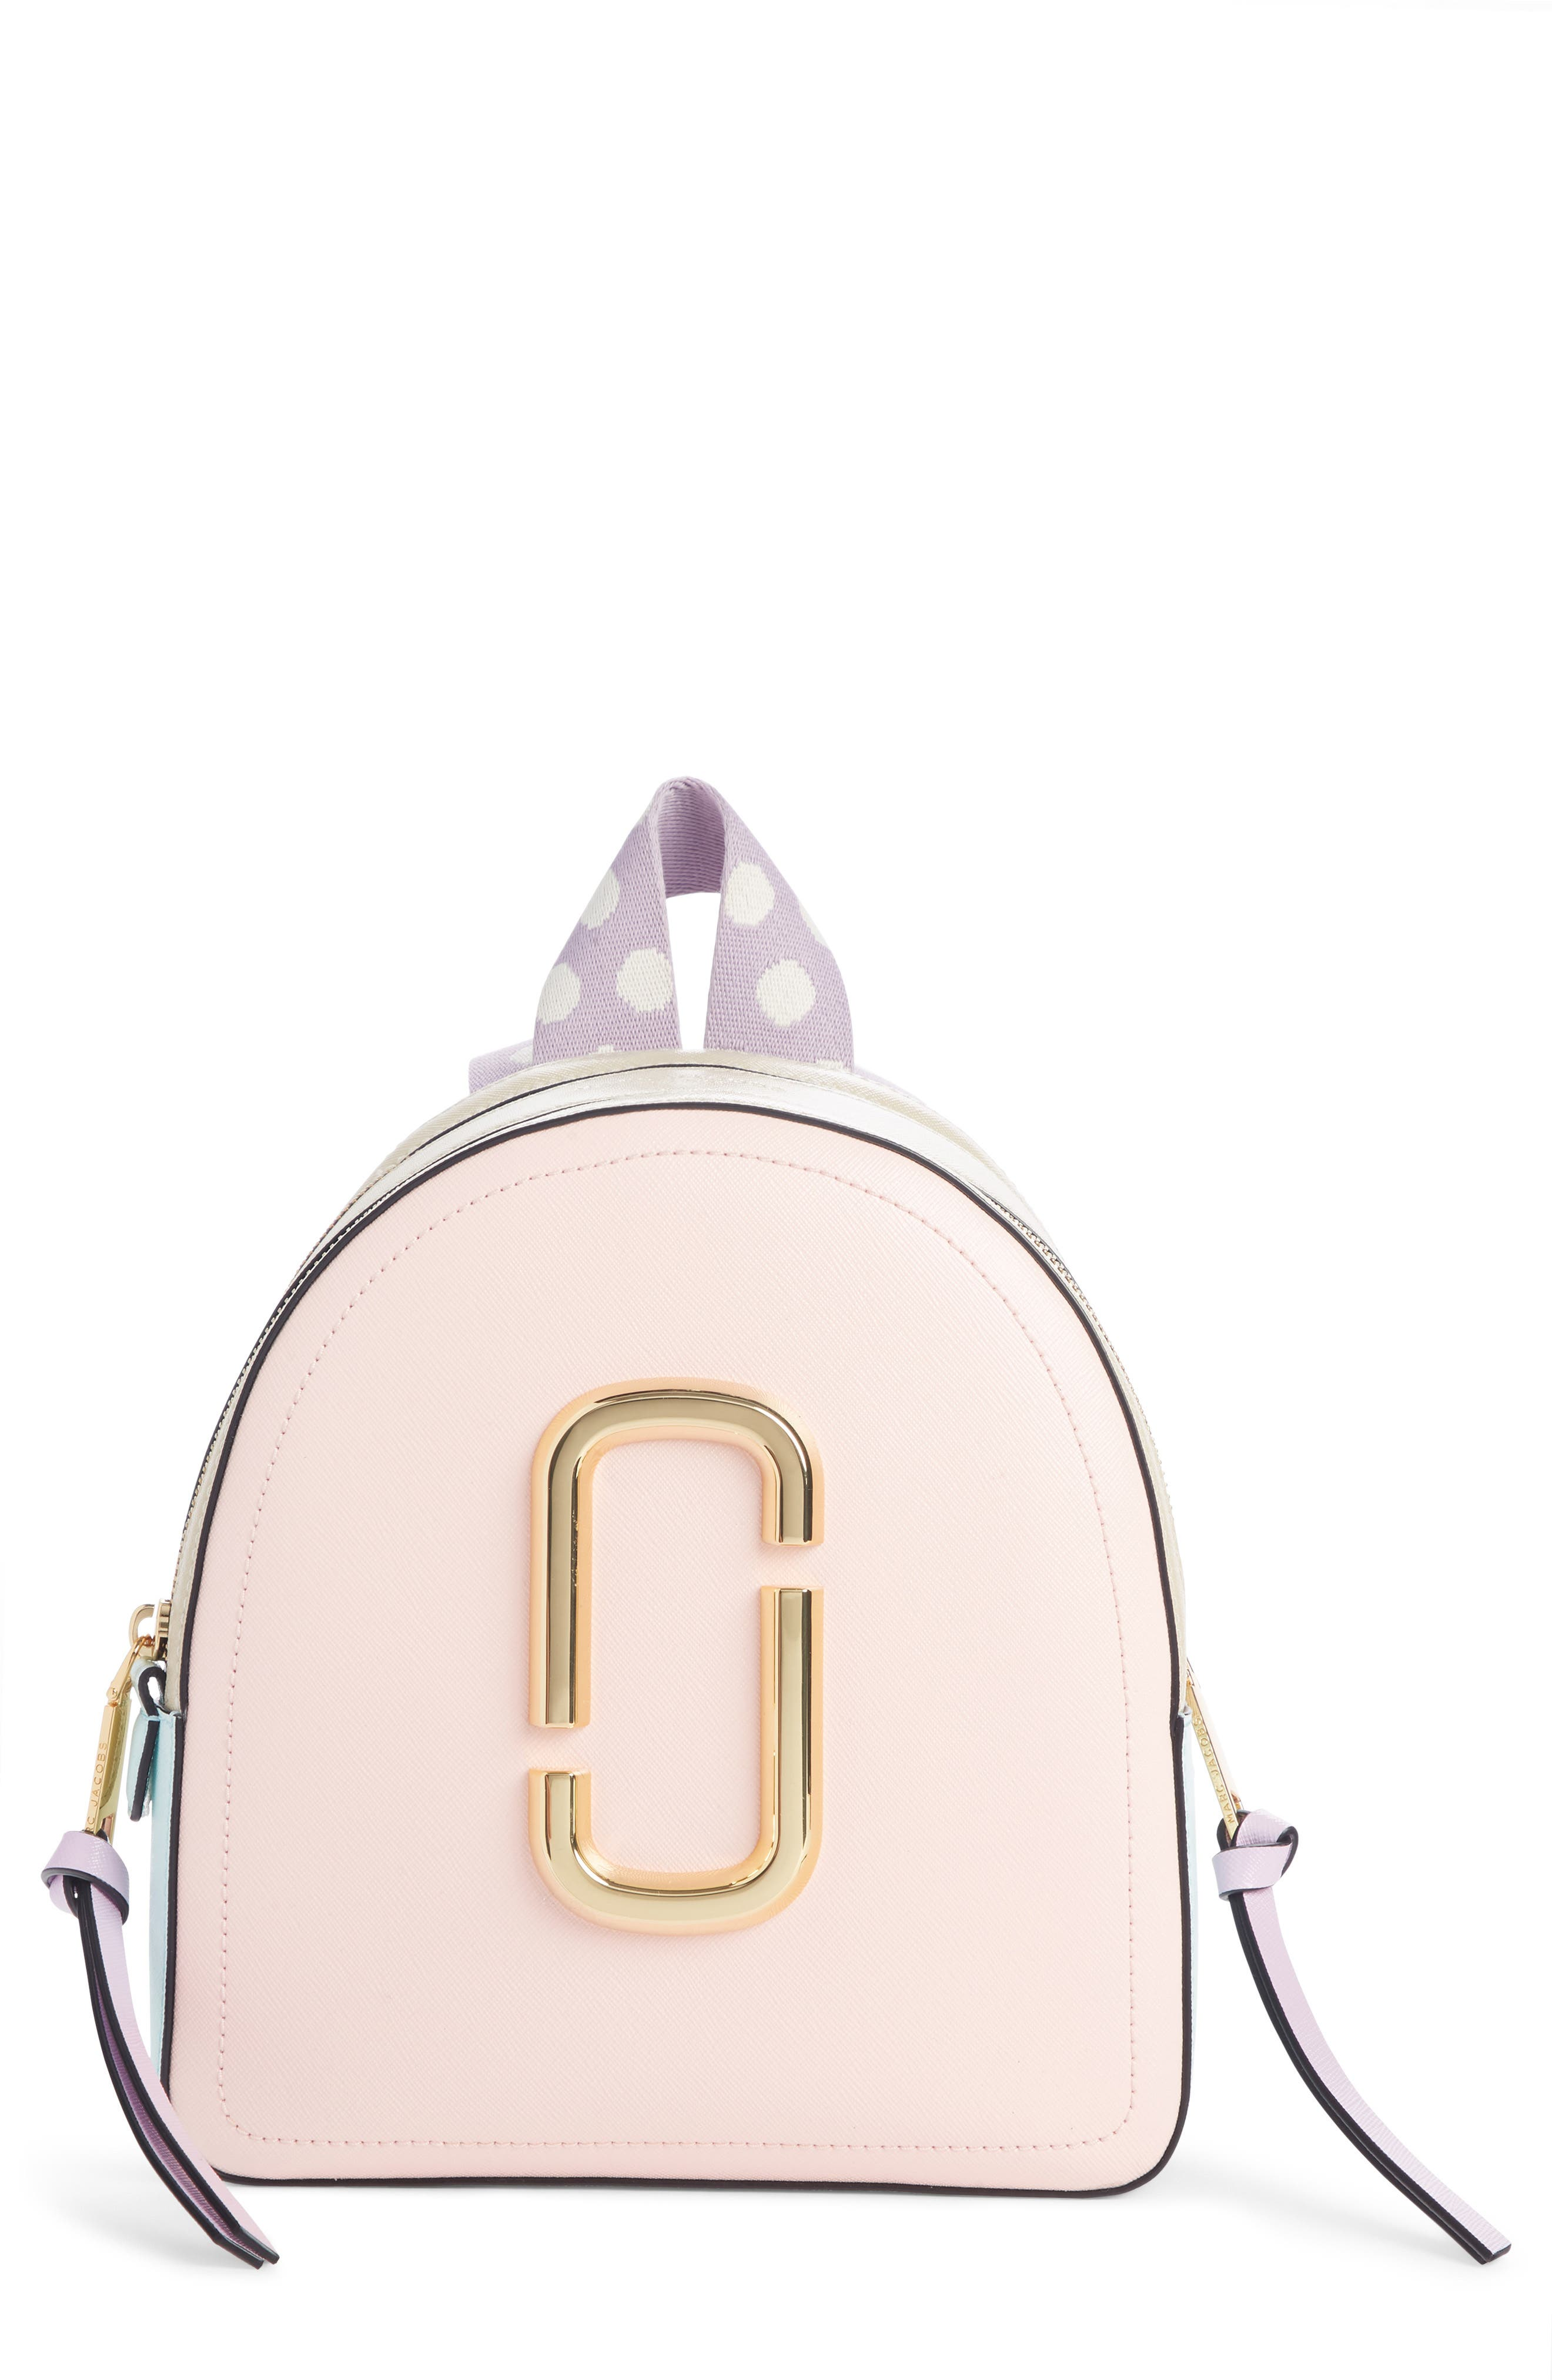 MARC JACOBS, Pack Shot Leather Backpack, Main thumbnail 1, color, 650